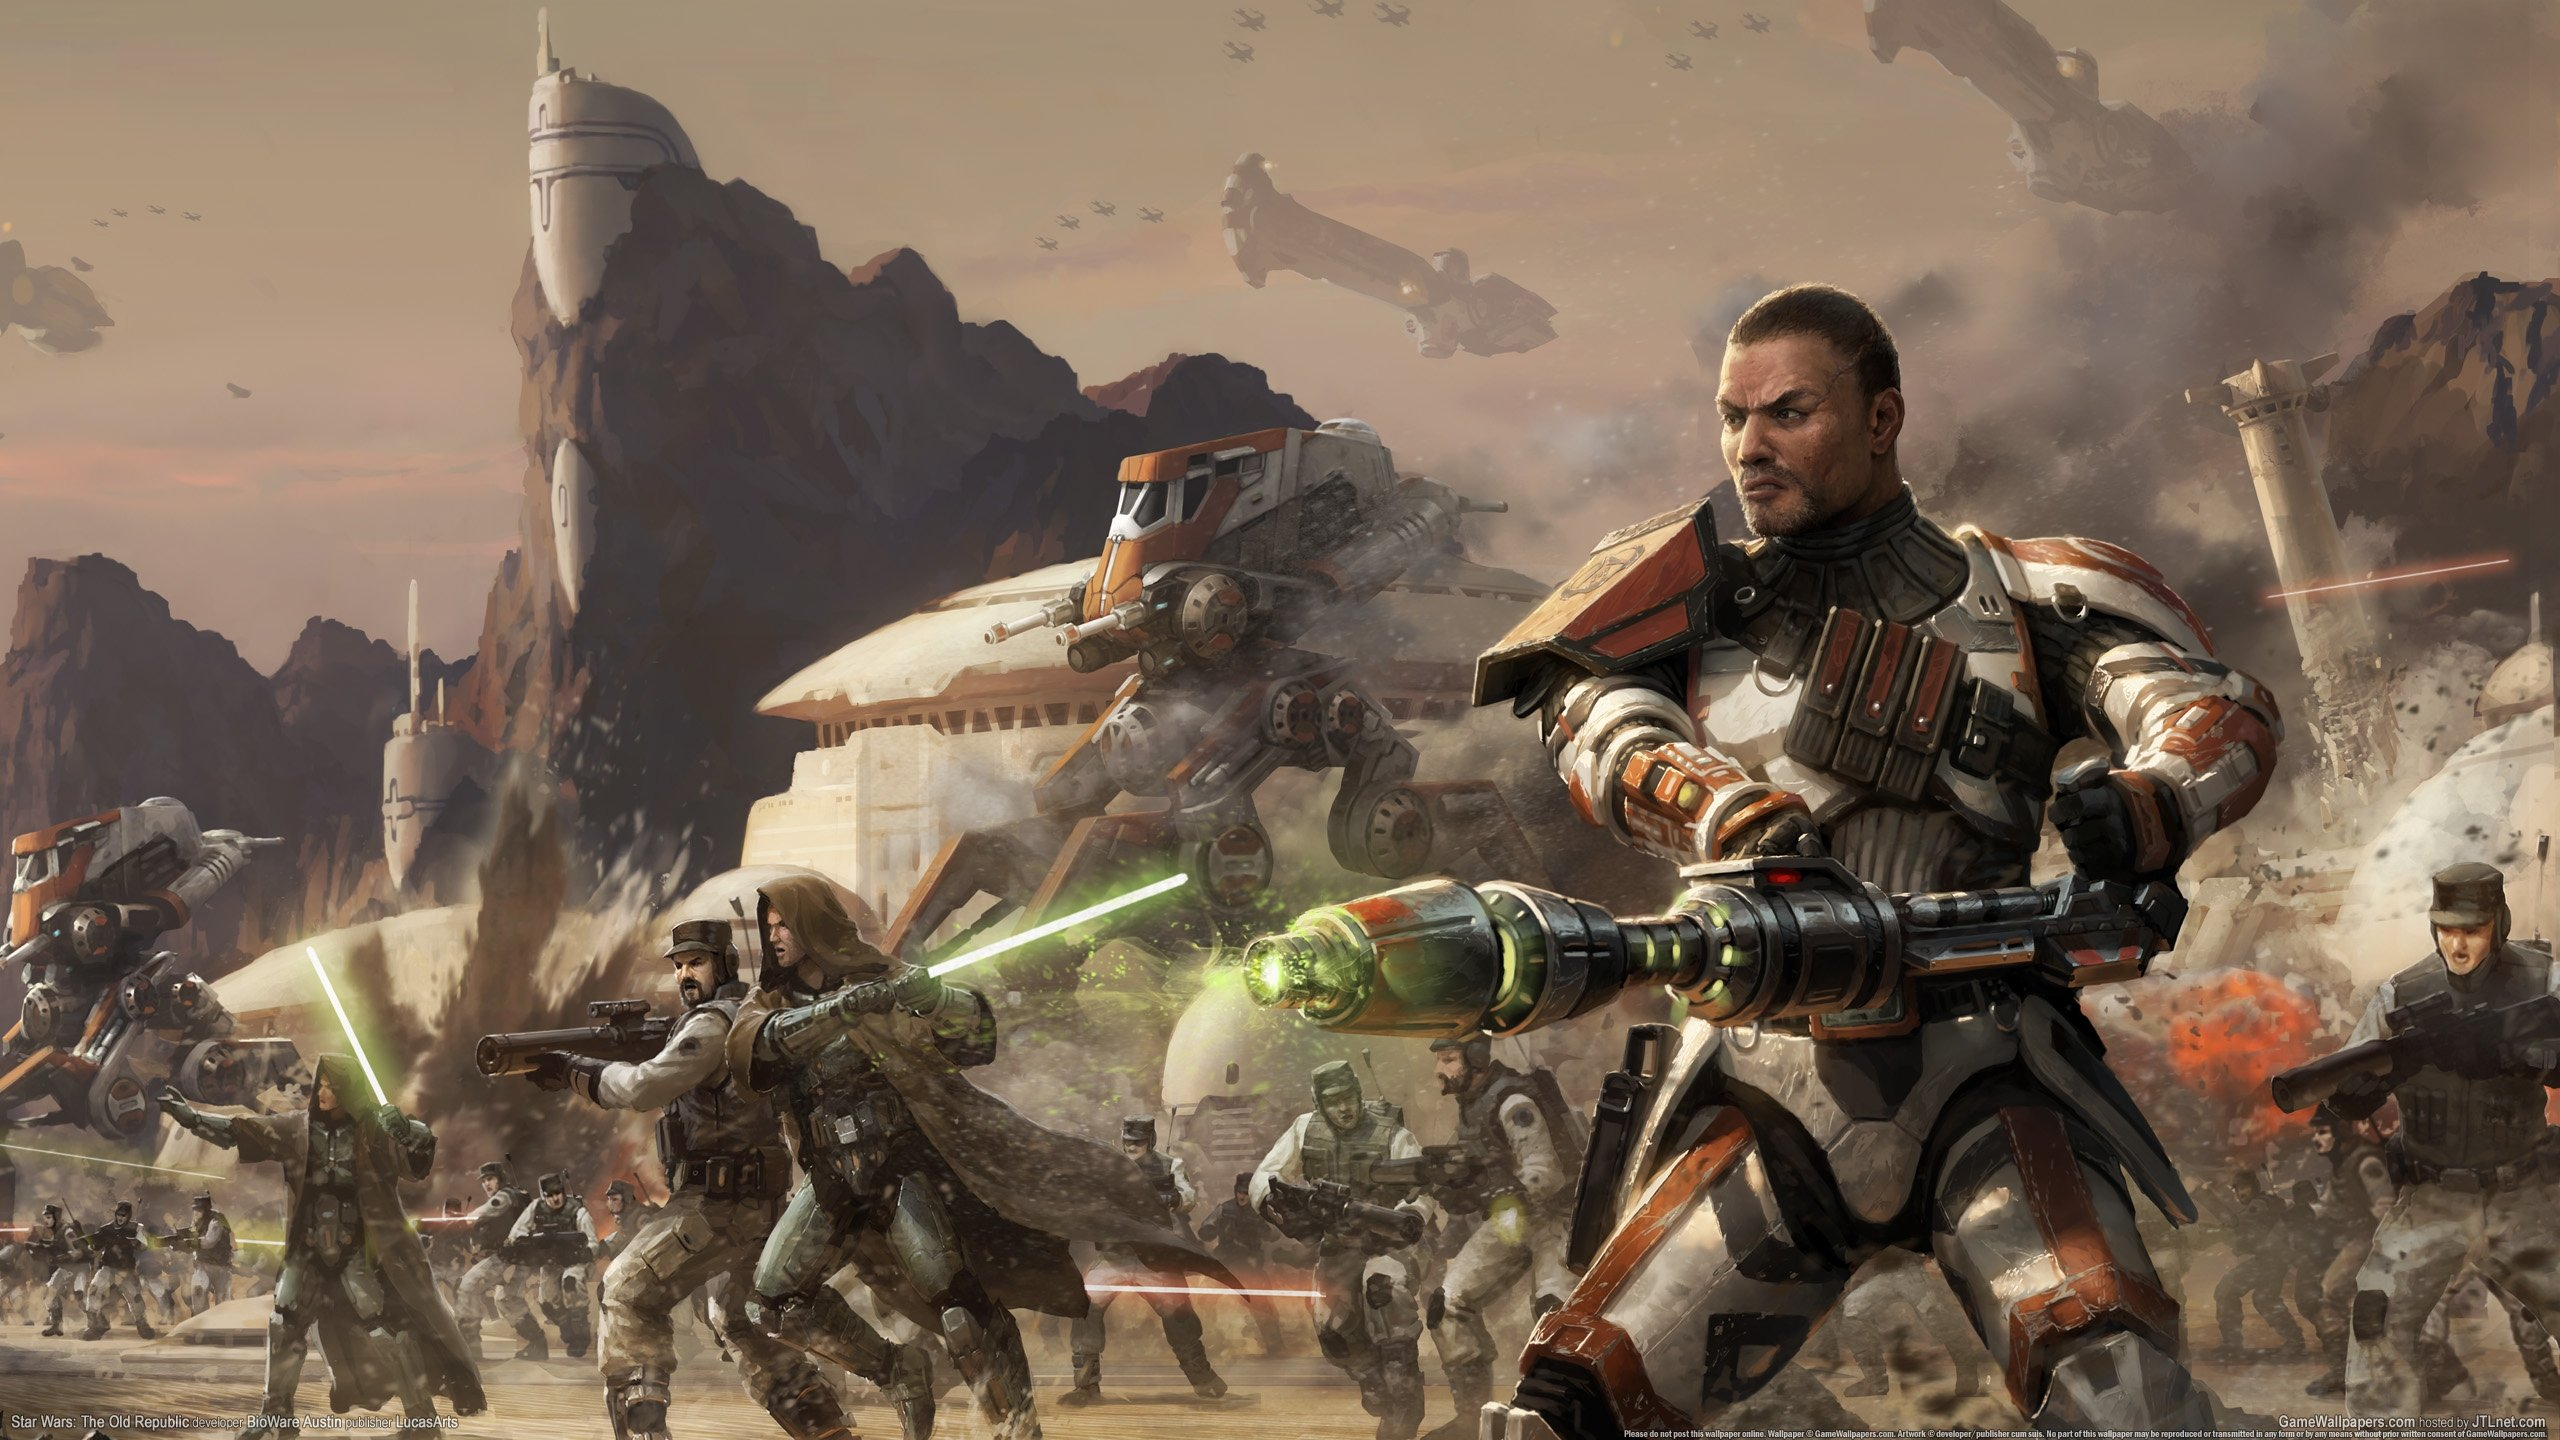 Star Wars The Old Republic Wallpapers 2560x1440 Desktop Backgrounds